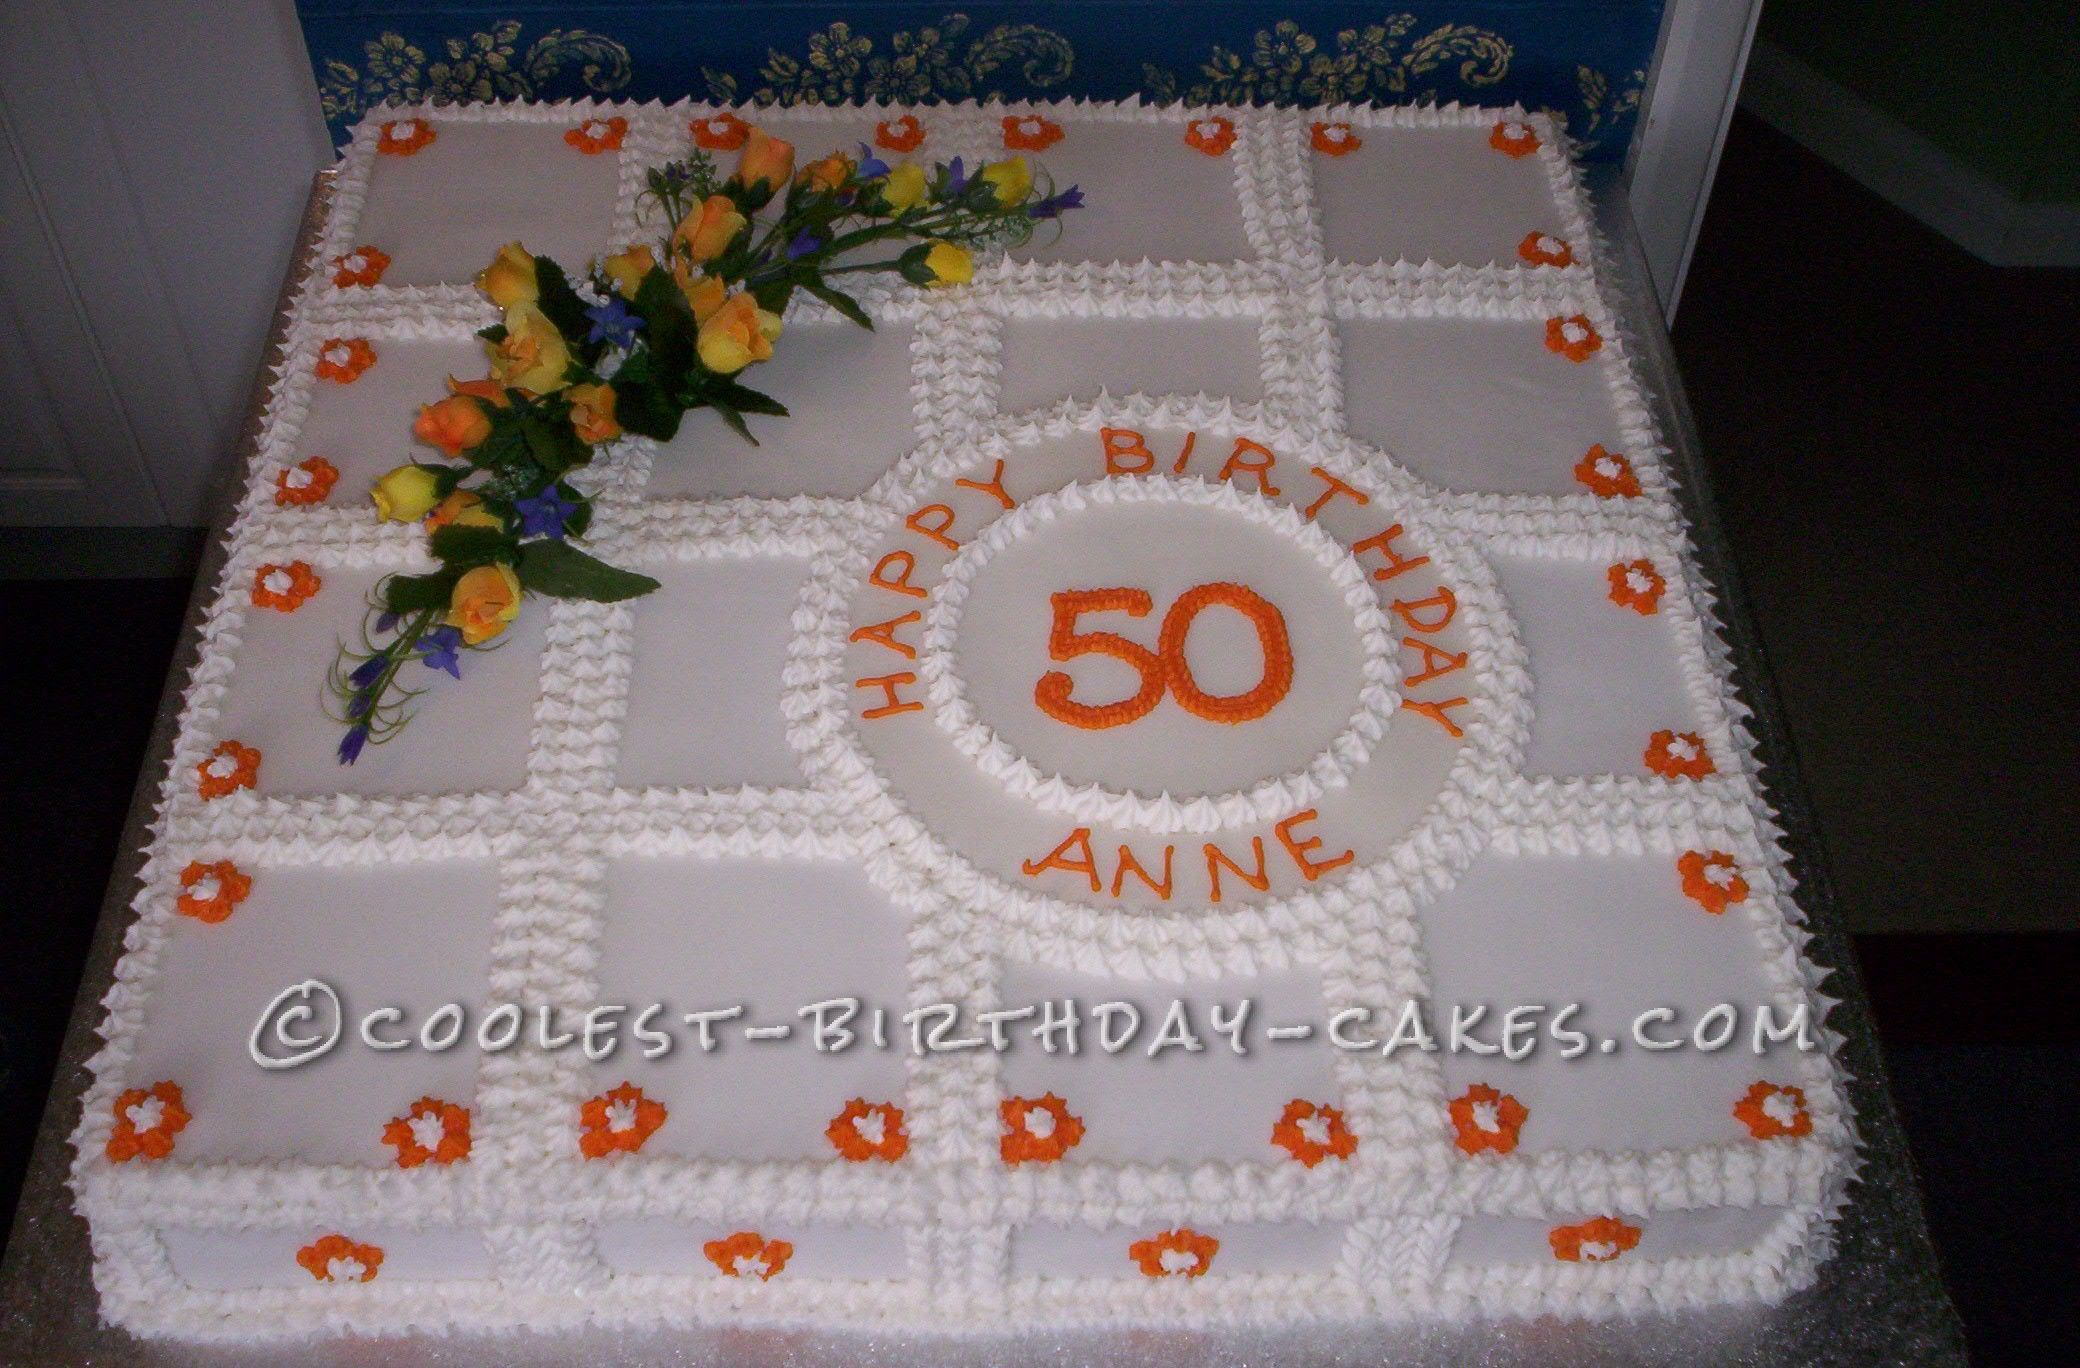 Cool Homemade 50th Birthday Cake Birthday cakes Birthdays and Cake